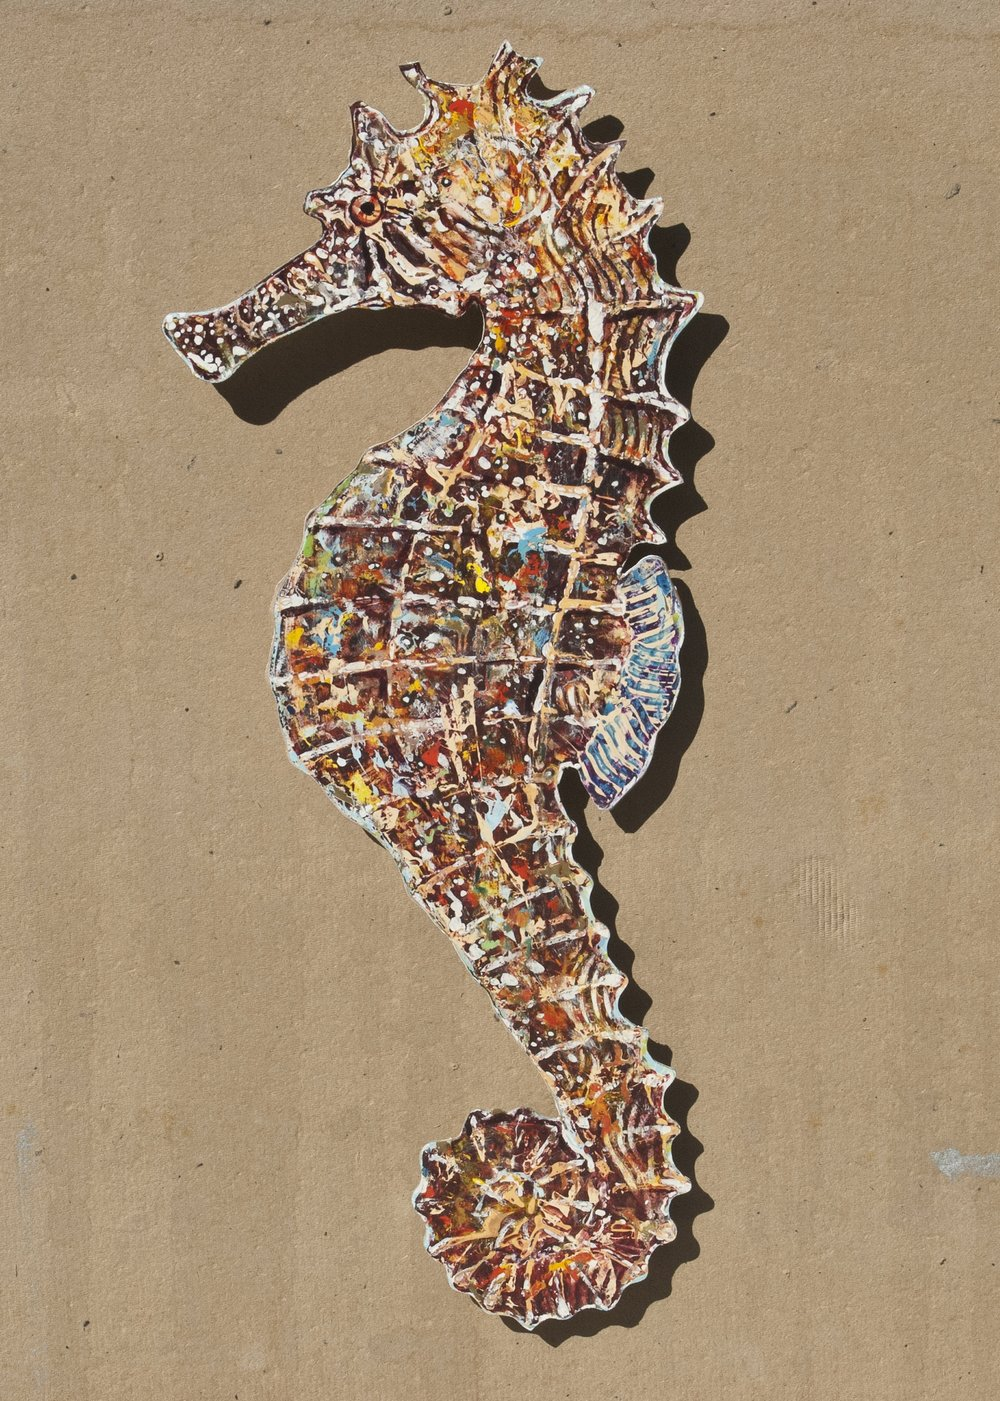 Seahorse, abstract